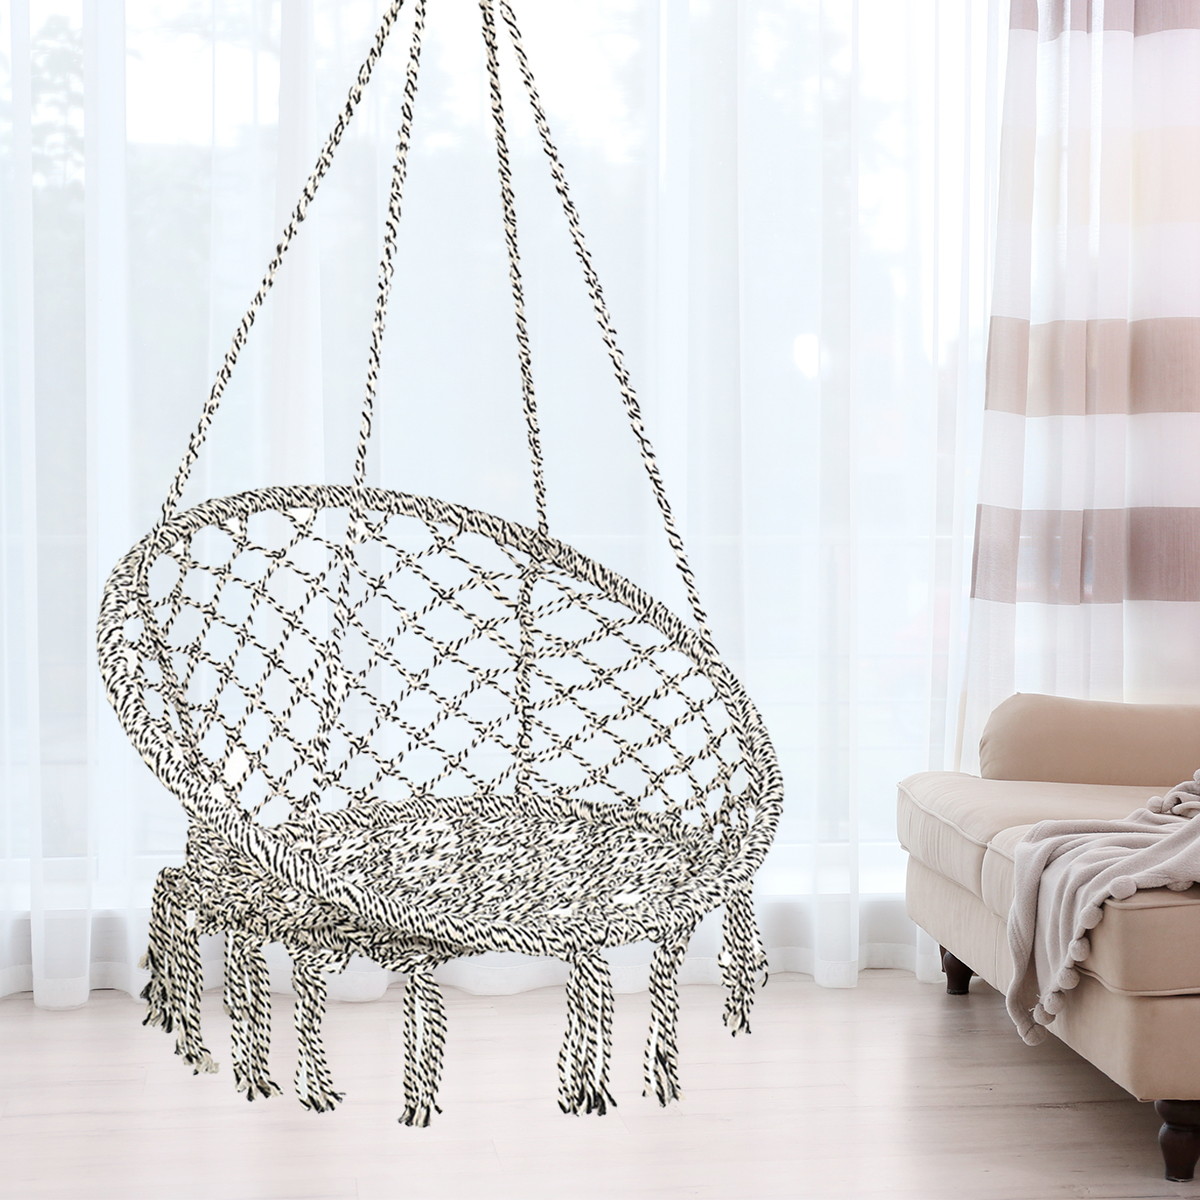 Hammock Chair Macrame Swing With Hanging Hardware Kit Handmade Knitted Cotton Rope Hanging Chair For Indoor Outdoor Max Weight 265 Lbs Walmart Com Walmart Com